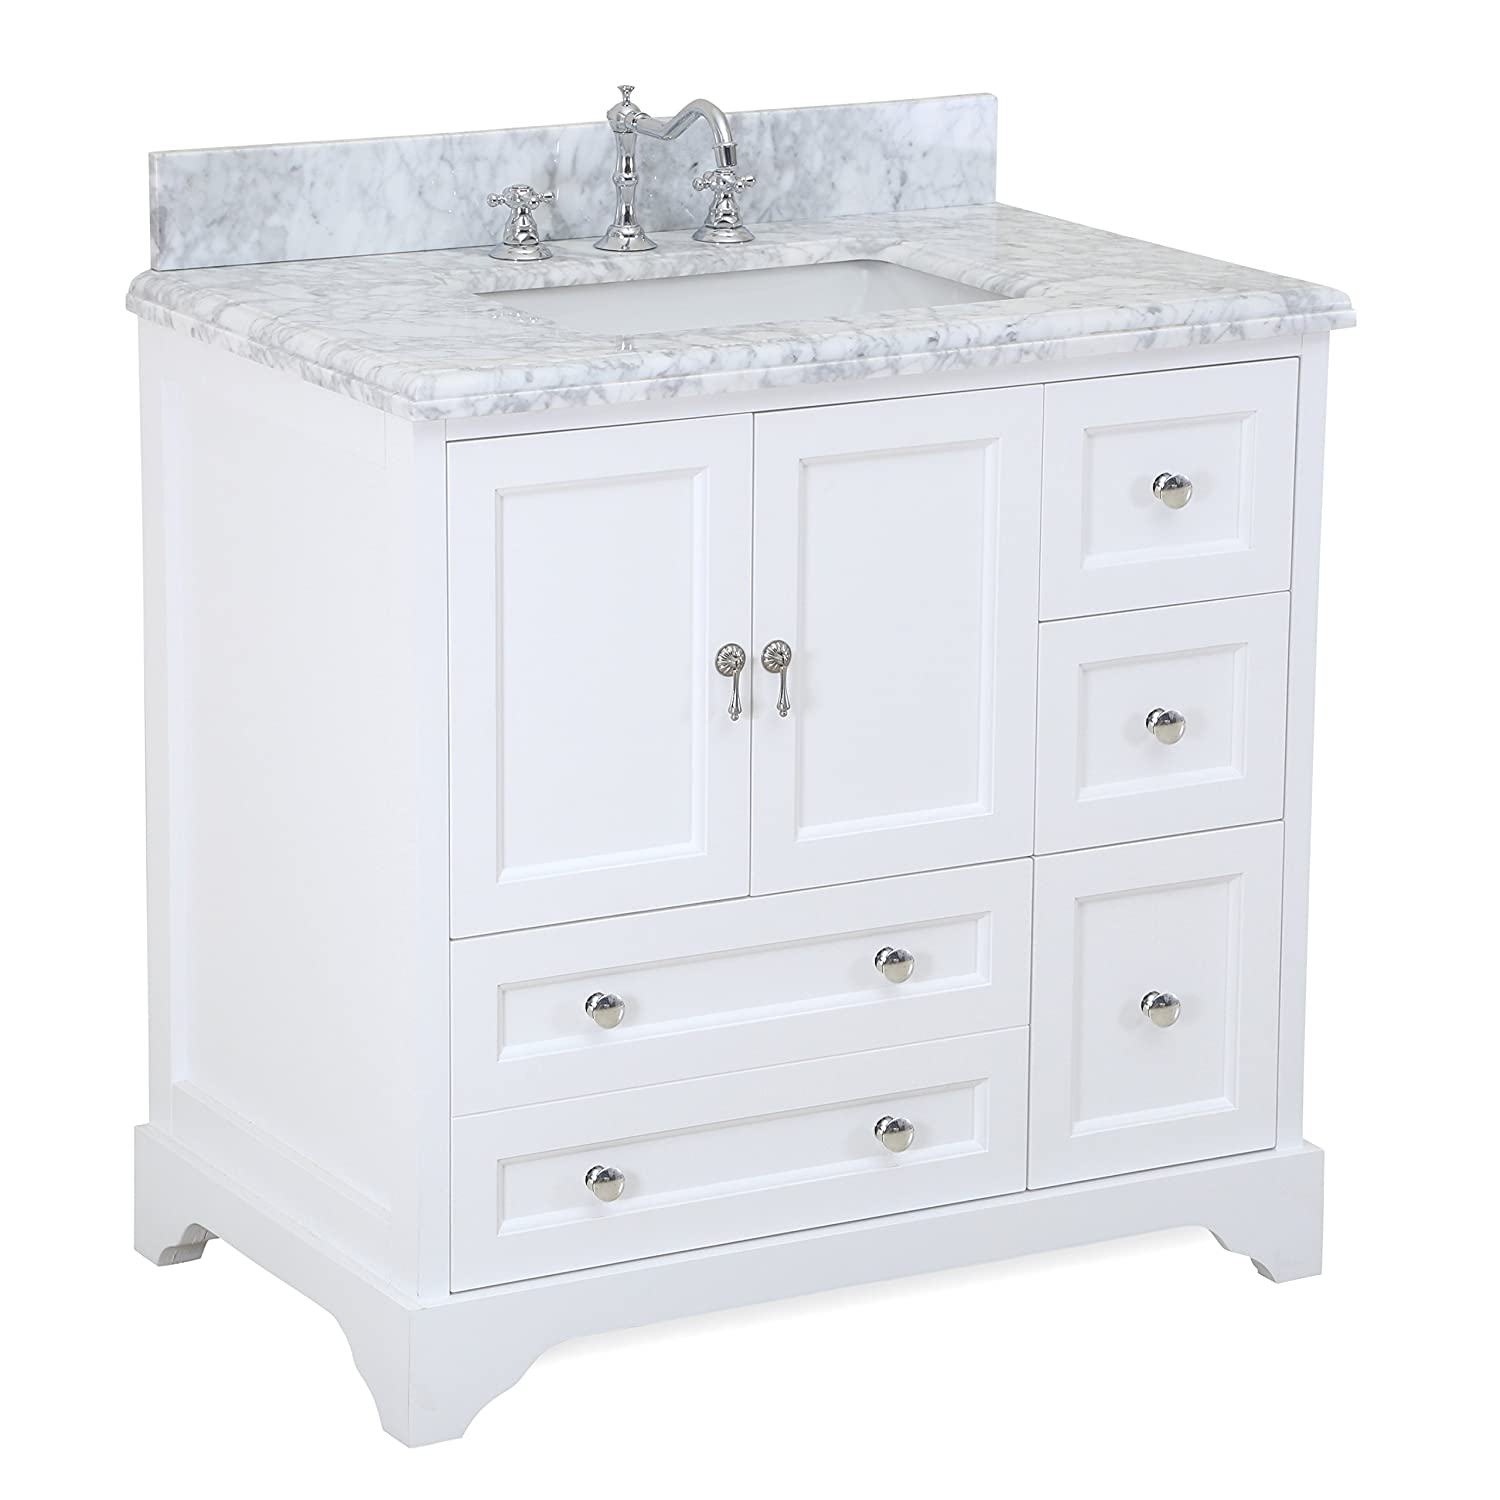 Madison 36-inch Bathroom Vanity Carrara White Includes Italian Carrara Marble Top, White Cabinet with Soft Close Drawers Doors, and Rectangular Ceramic Sink